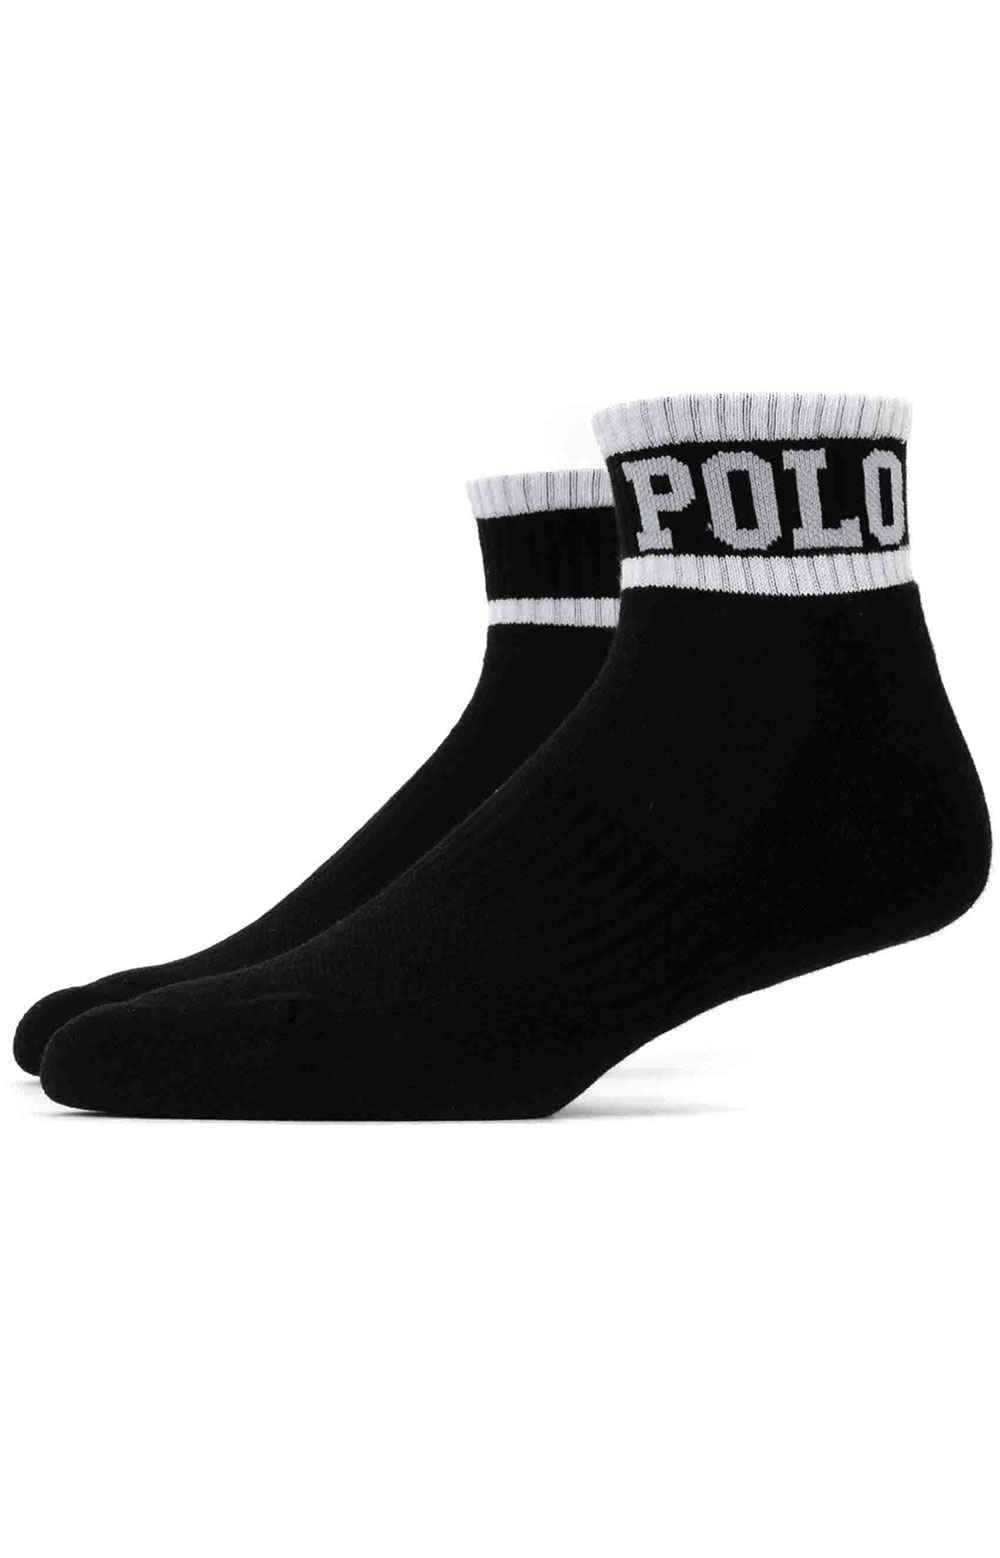 Polo Logo Cushioned Quarter Socks 3 Pack - White Assorted  5